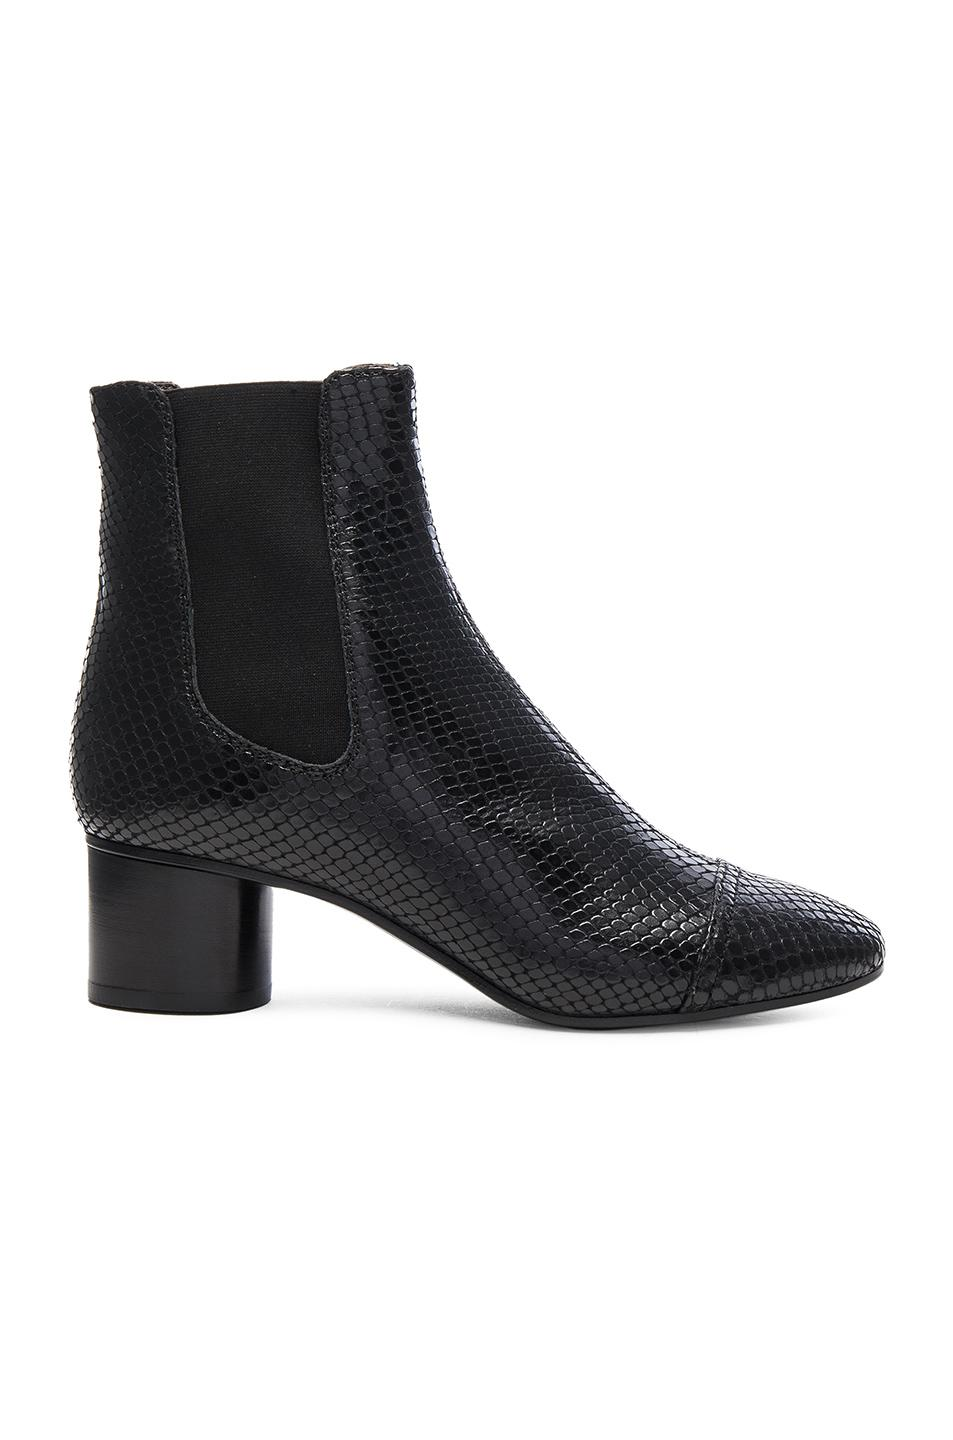 Isabel Marant Danae Printed Python Booties in ,Animal.